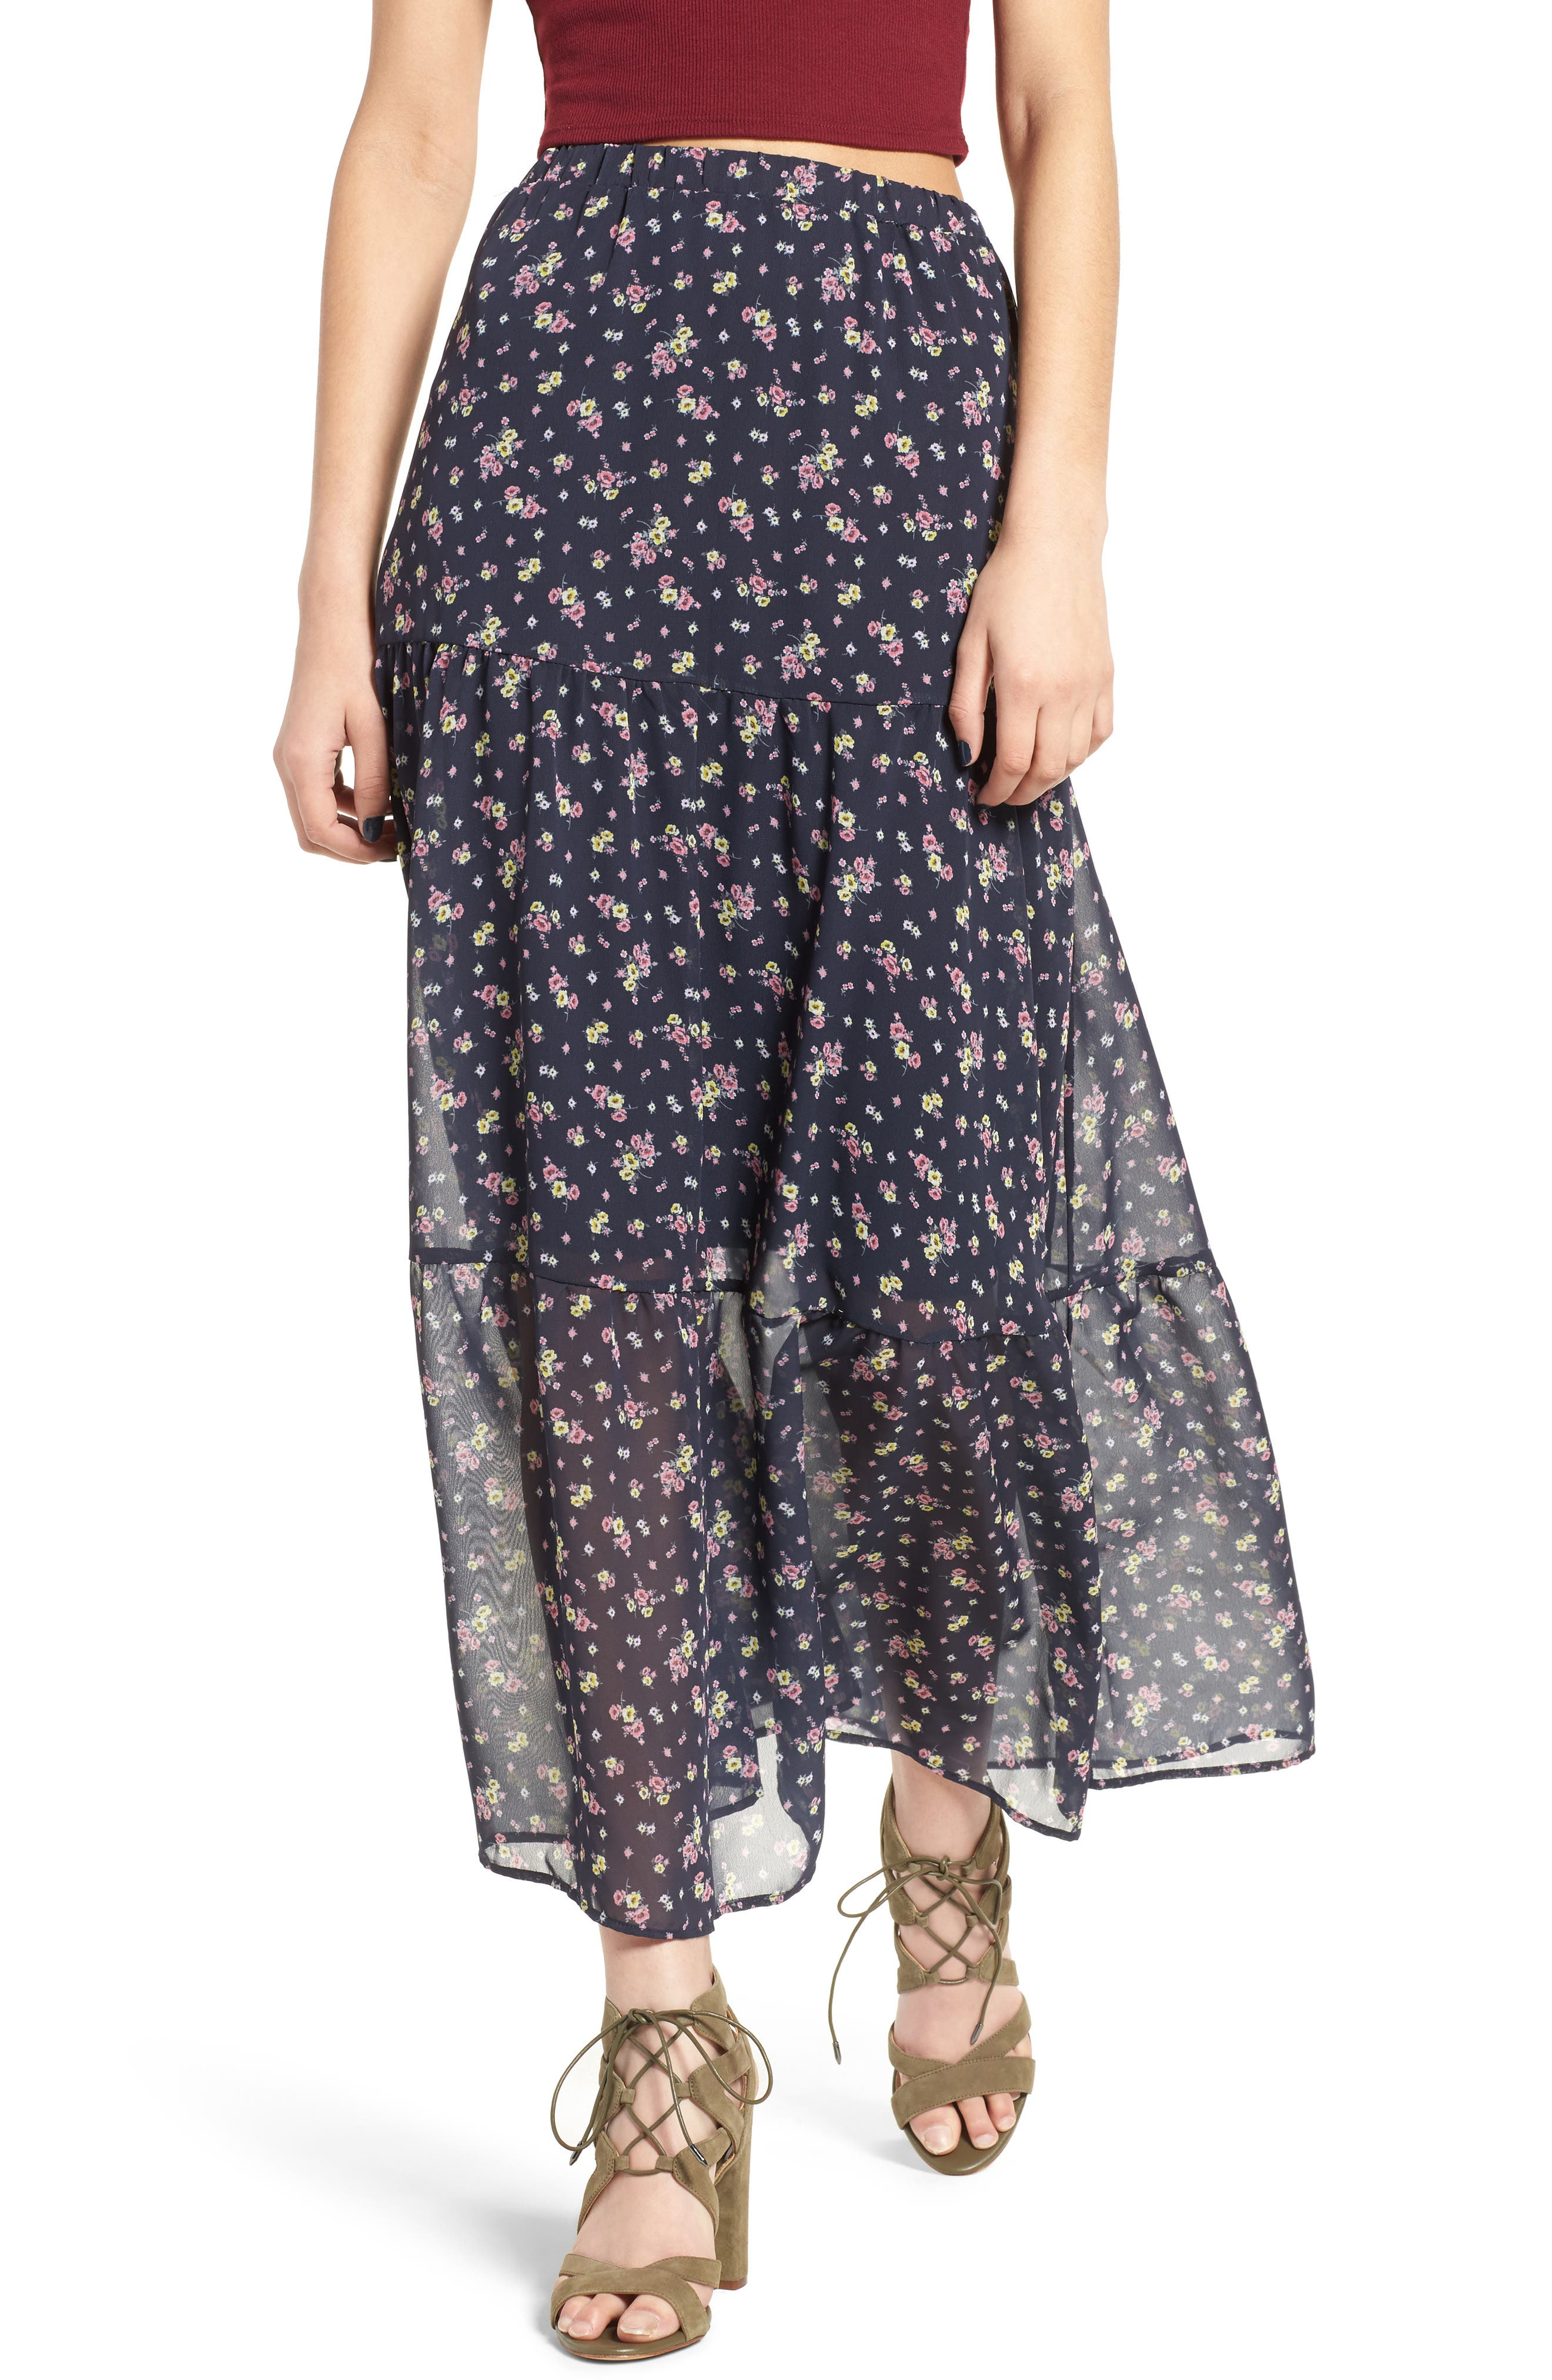 Alternate Image 1 Selected - BP. Floral Print Maxi Skirt